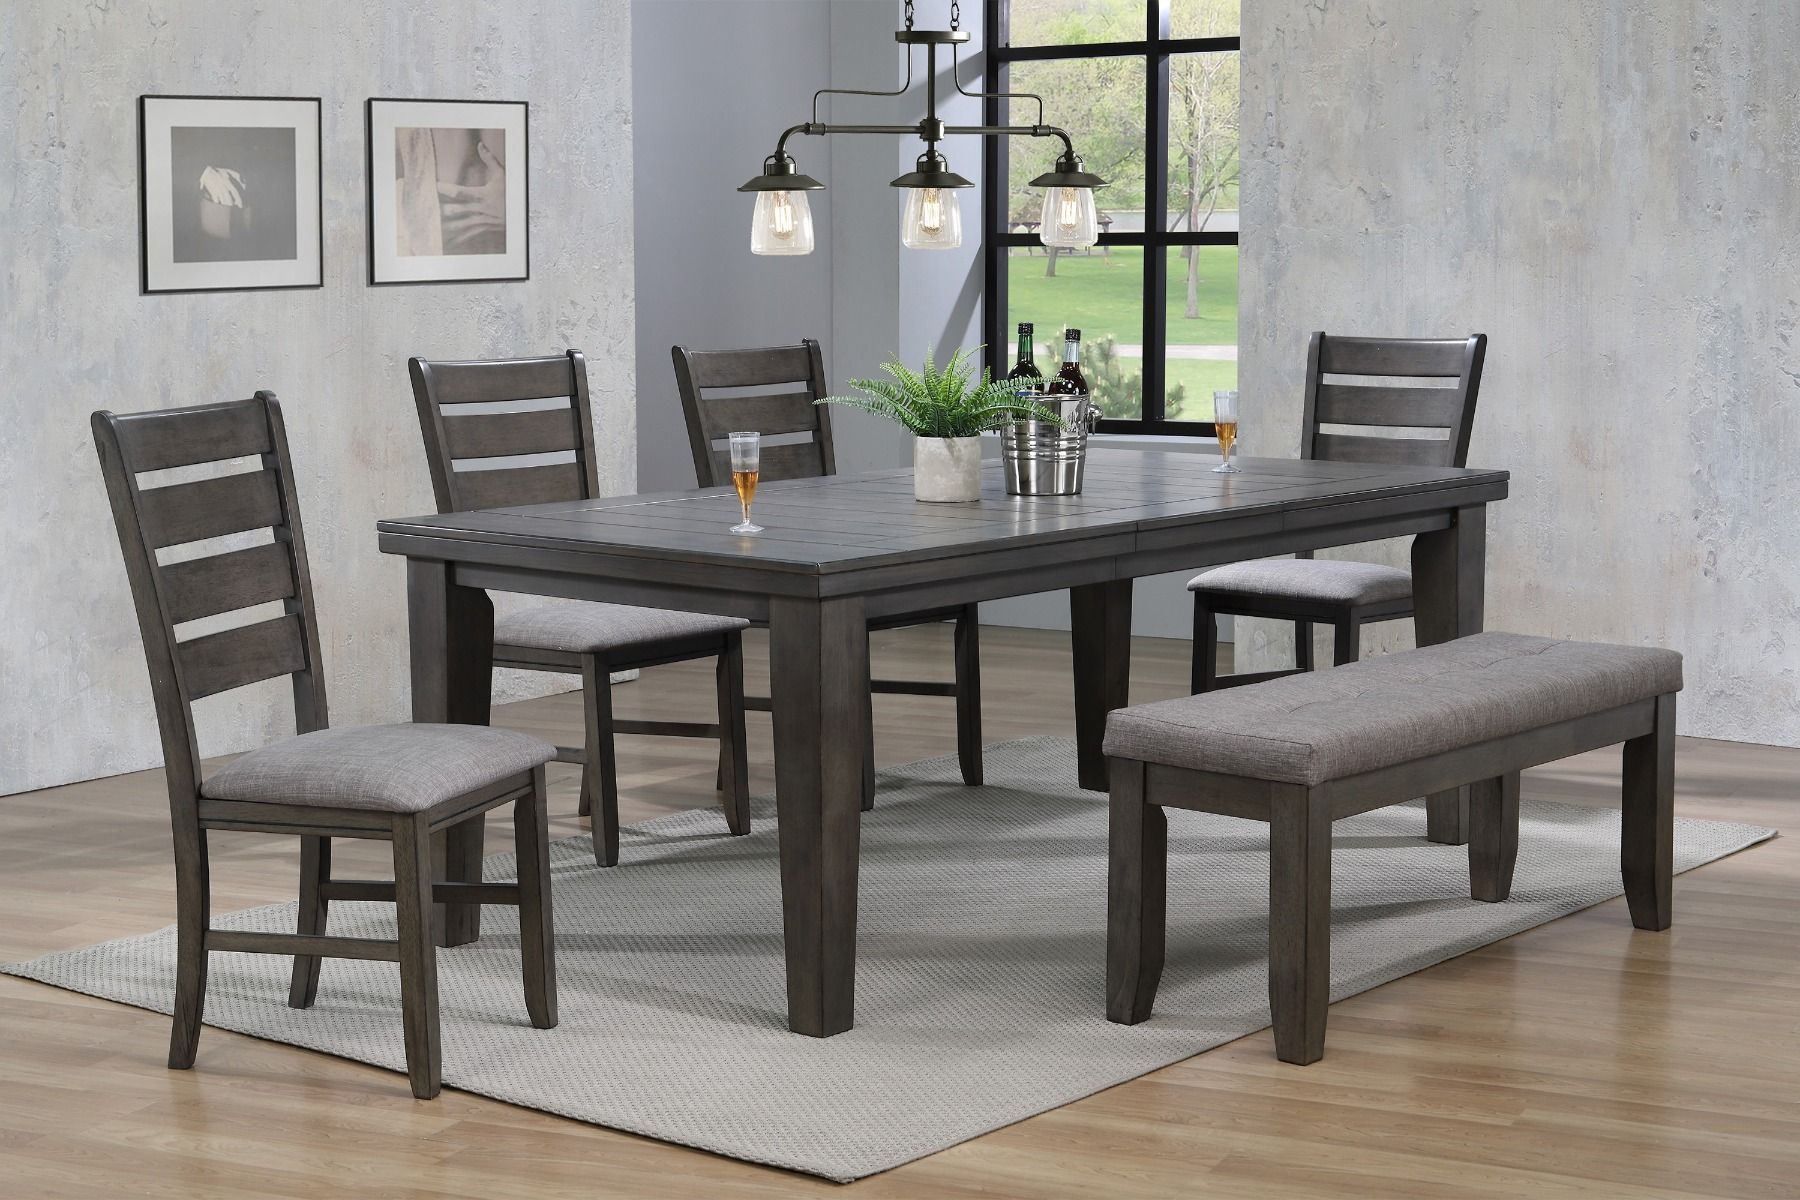 2152GY-T-4282 Dining Set